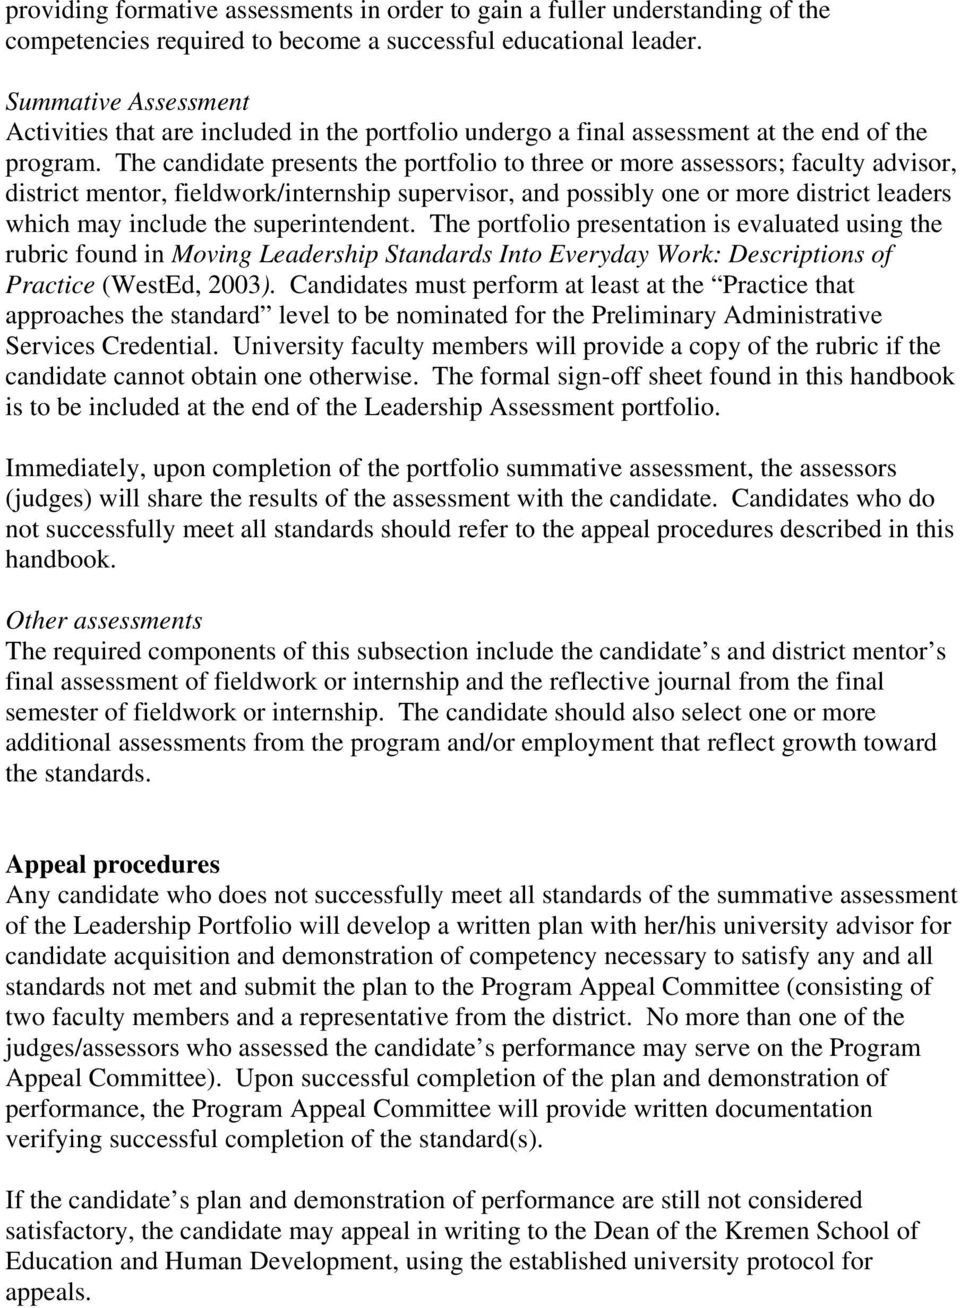 The candidate presents the portfolio to three or more assessors; faculty advisor, district mentor, fieldwork/internship supervisor, and possibly one or more district leaders which may include the